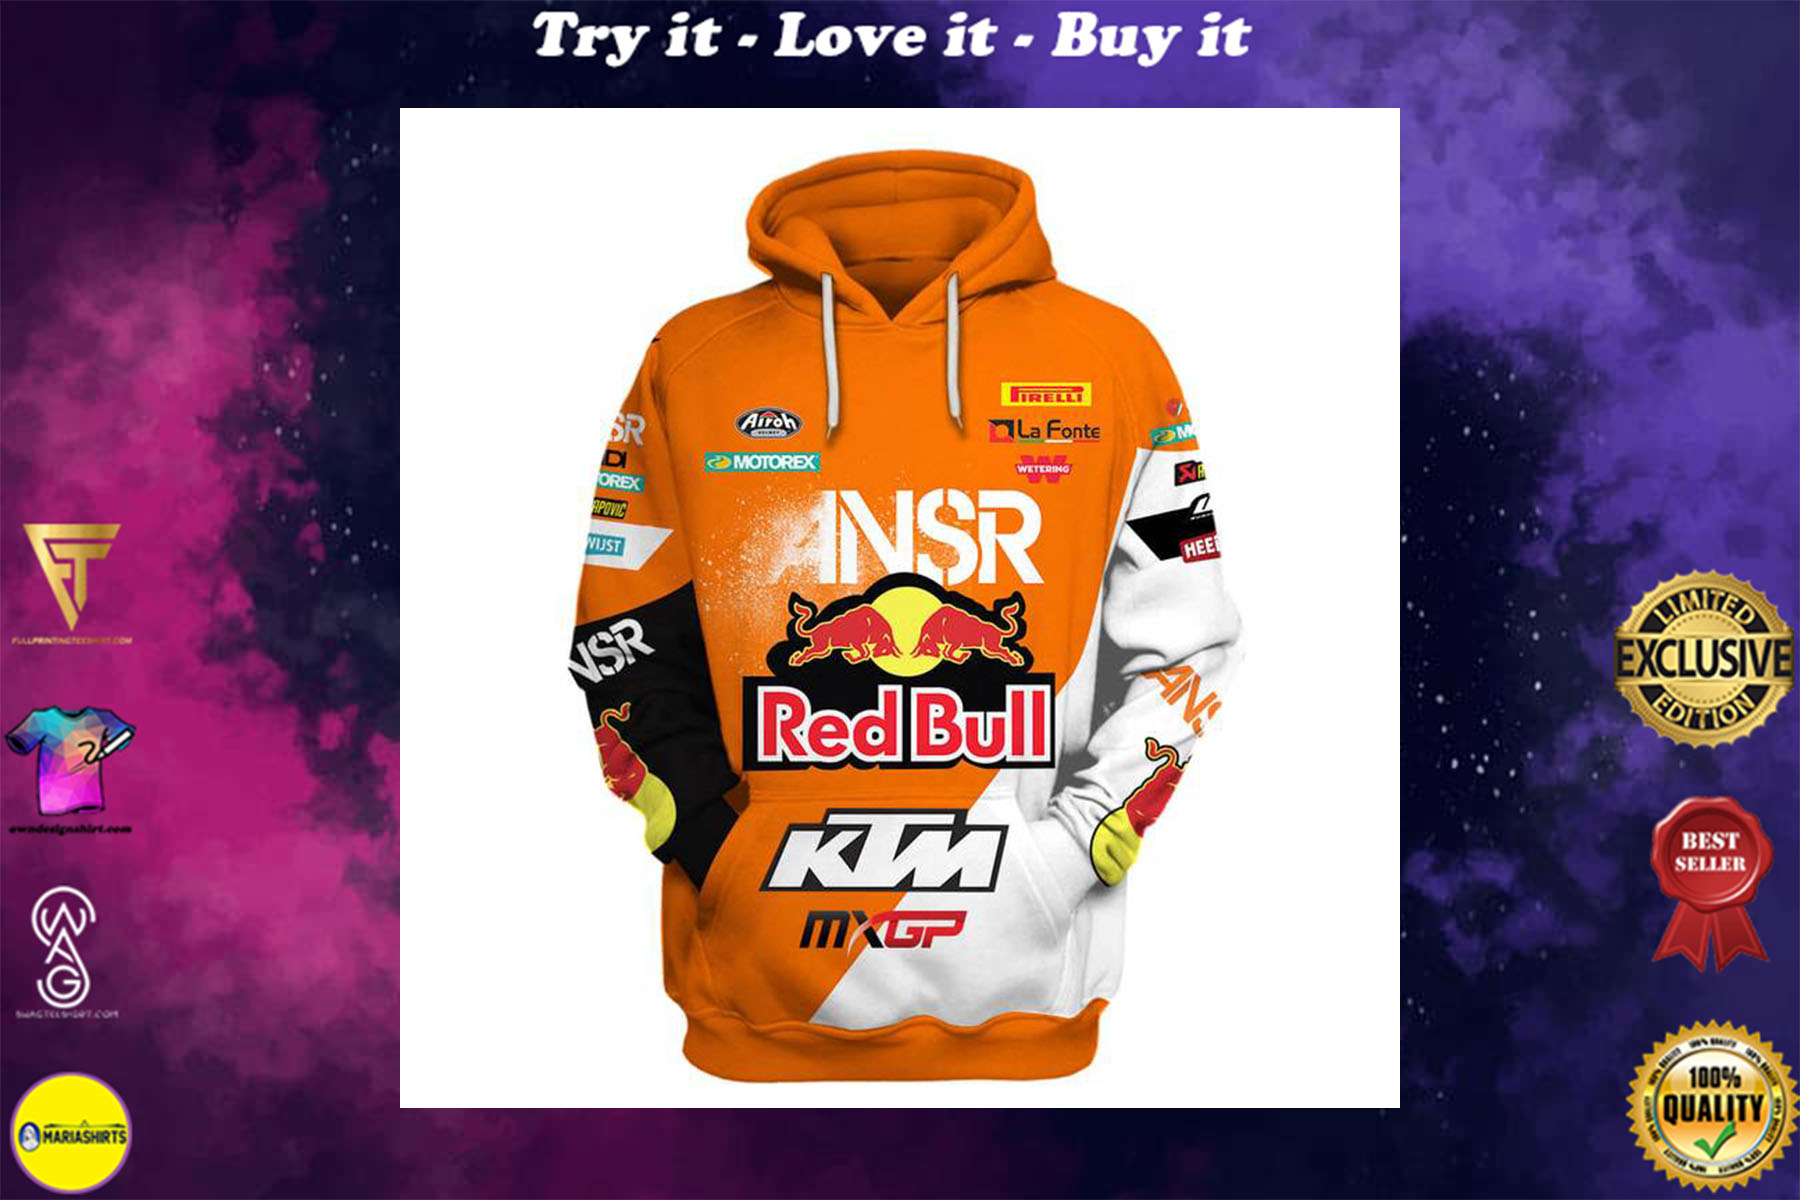 [special edition] red bull answer racing ktm motorcycles full printing shirt - maria